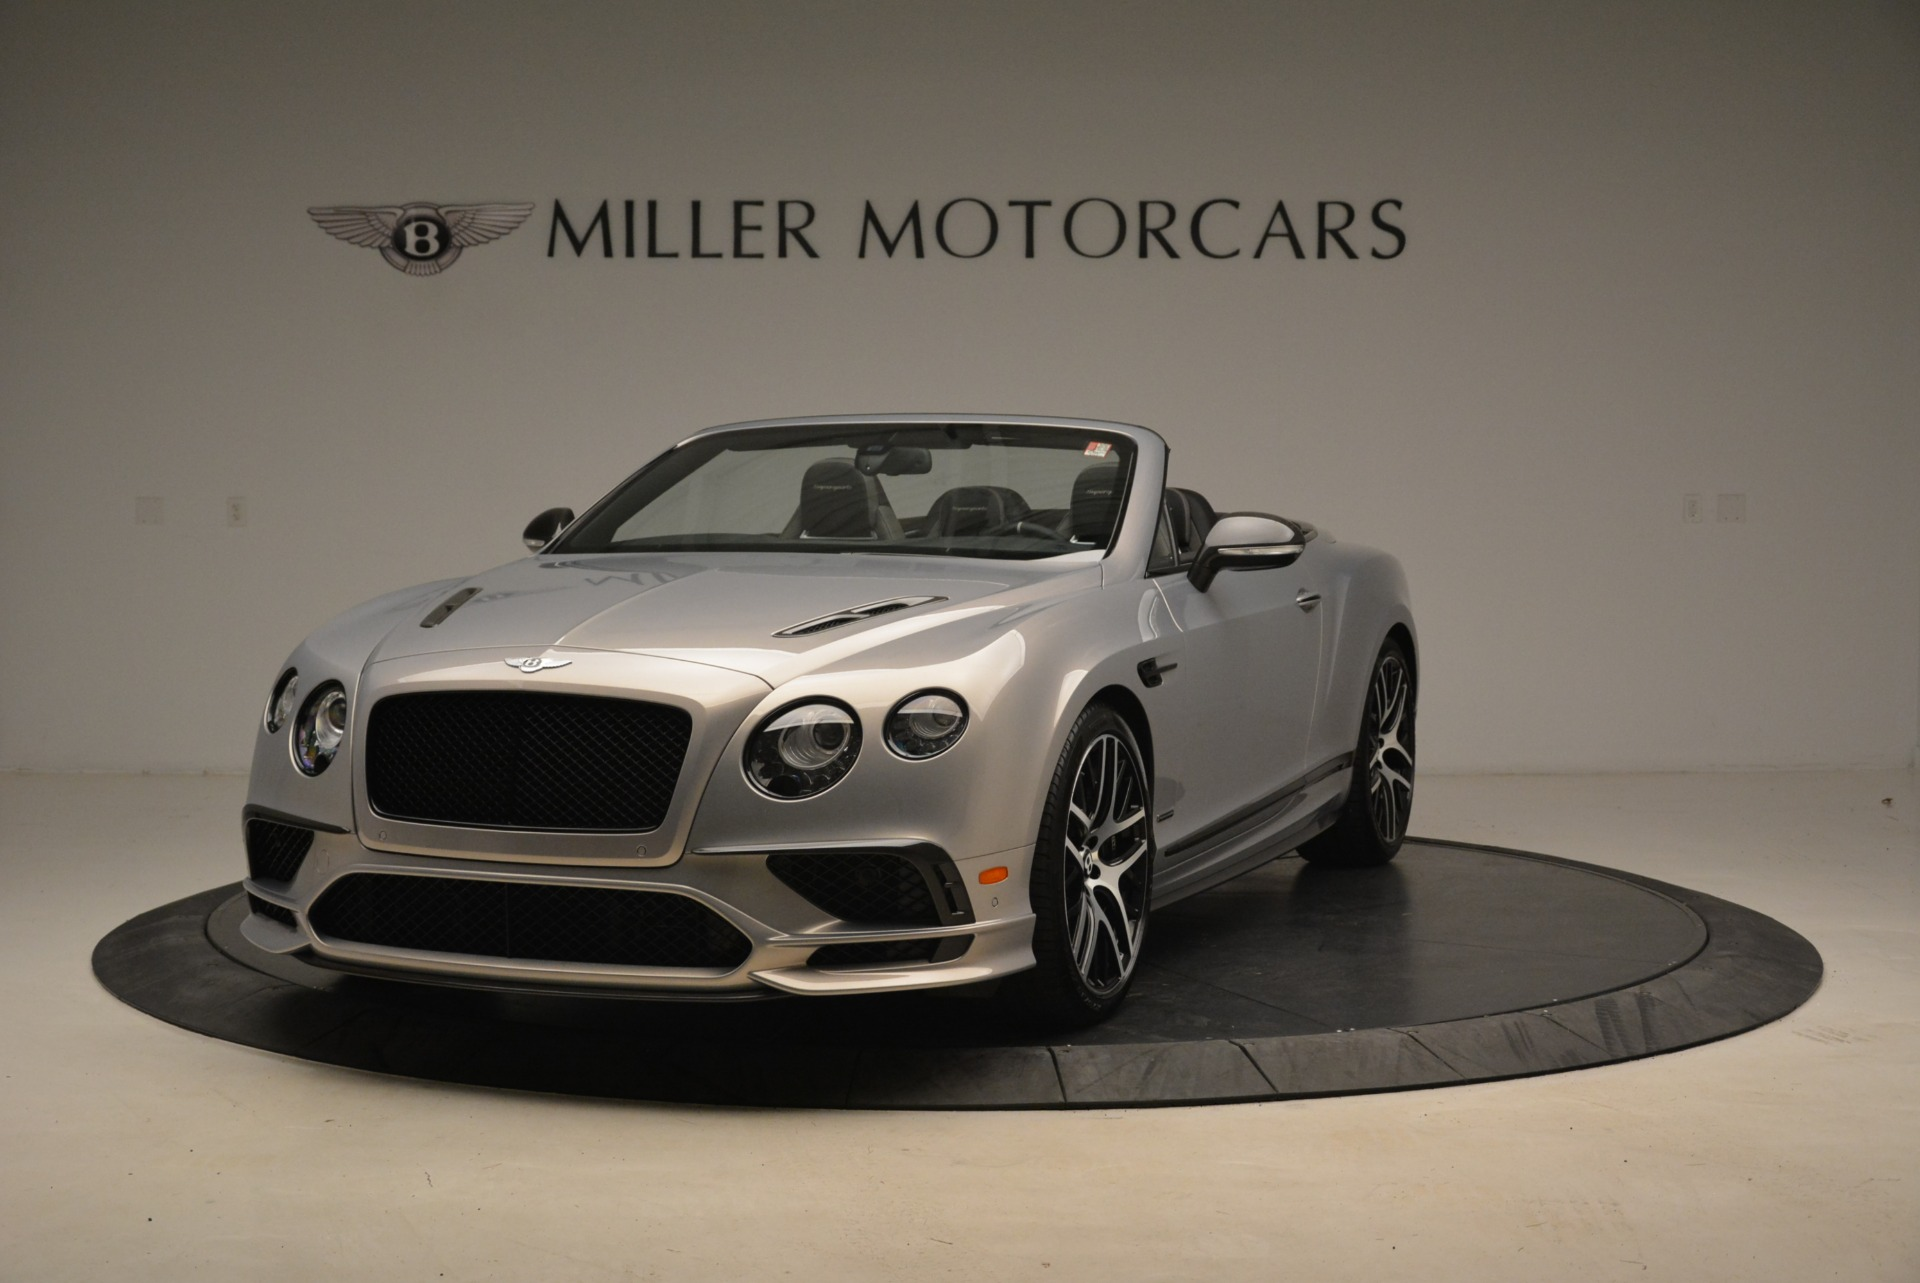 Used 2018 Bentley Continental GT Supersports Convertible for sale Sold at Rolls-Royce Motor Cars Greenwich in Greenwich CT 06830 1